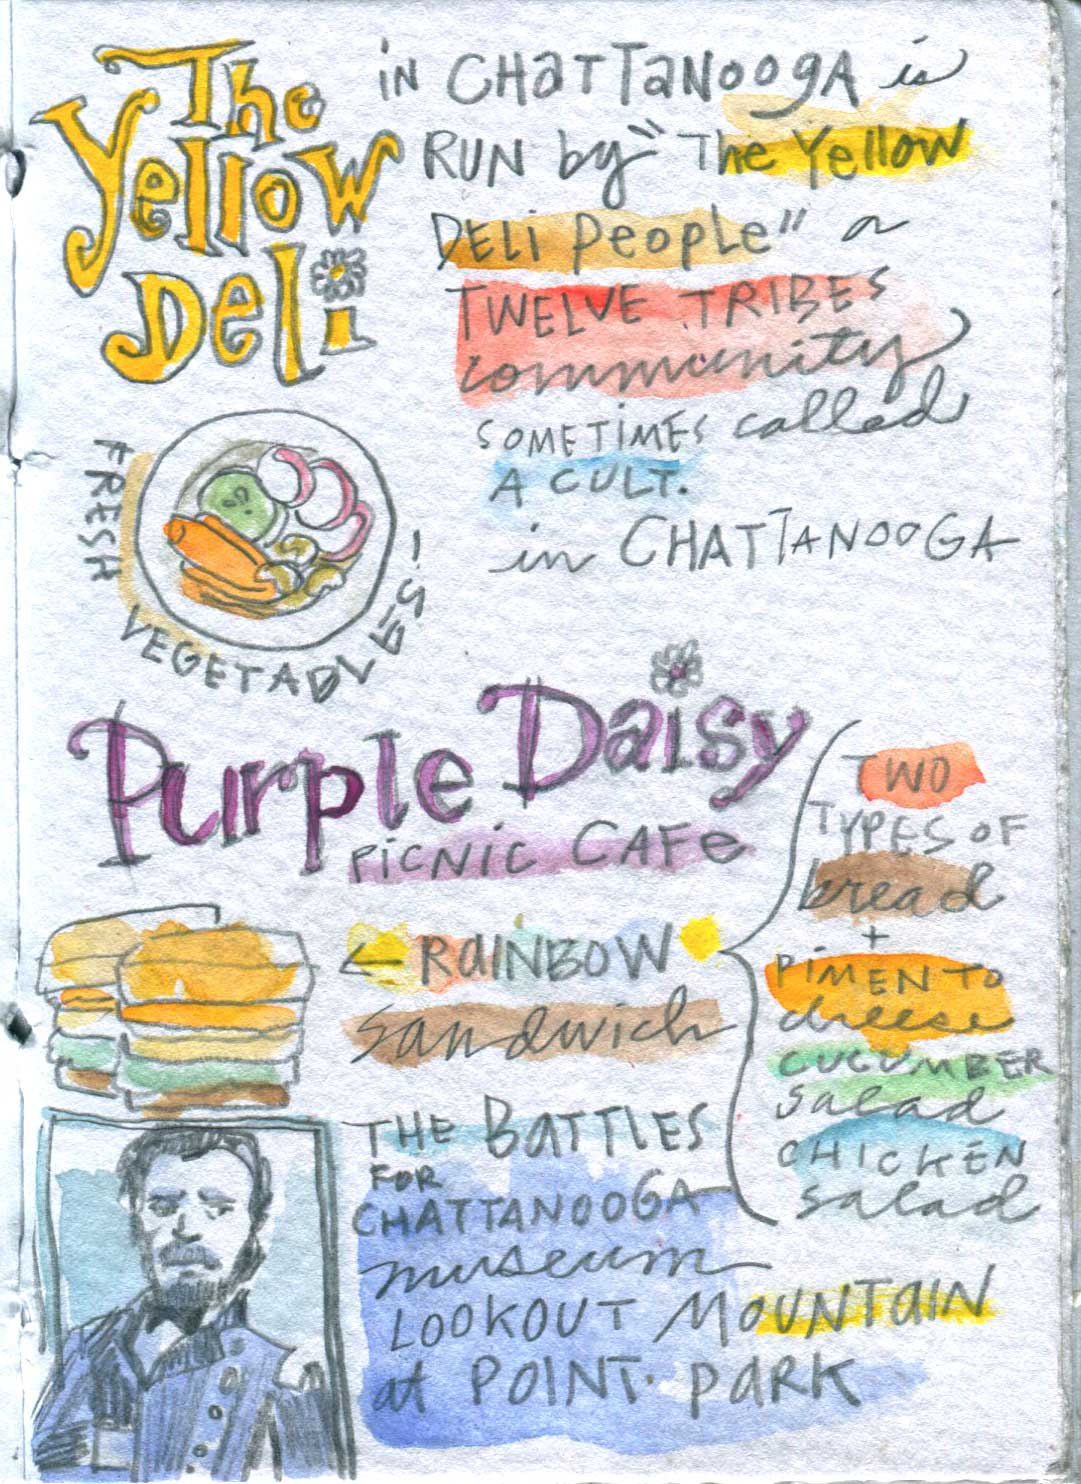 yellow-deli-purple-daisy081